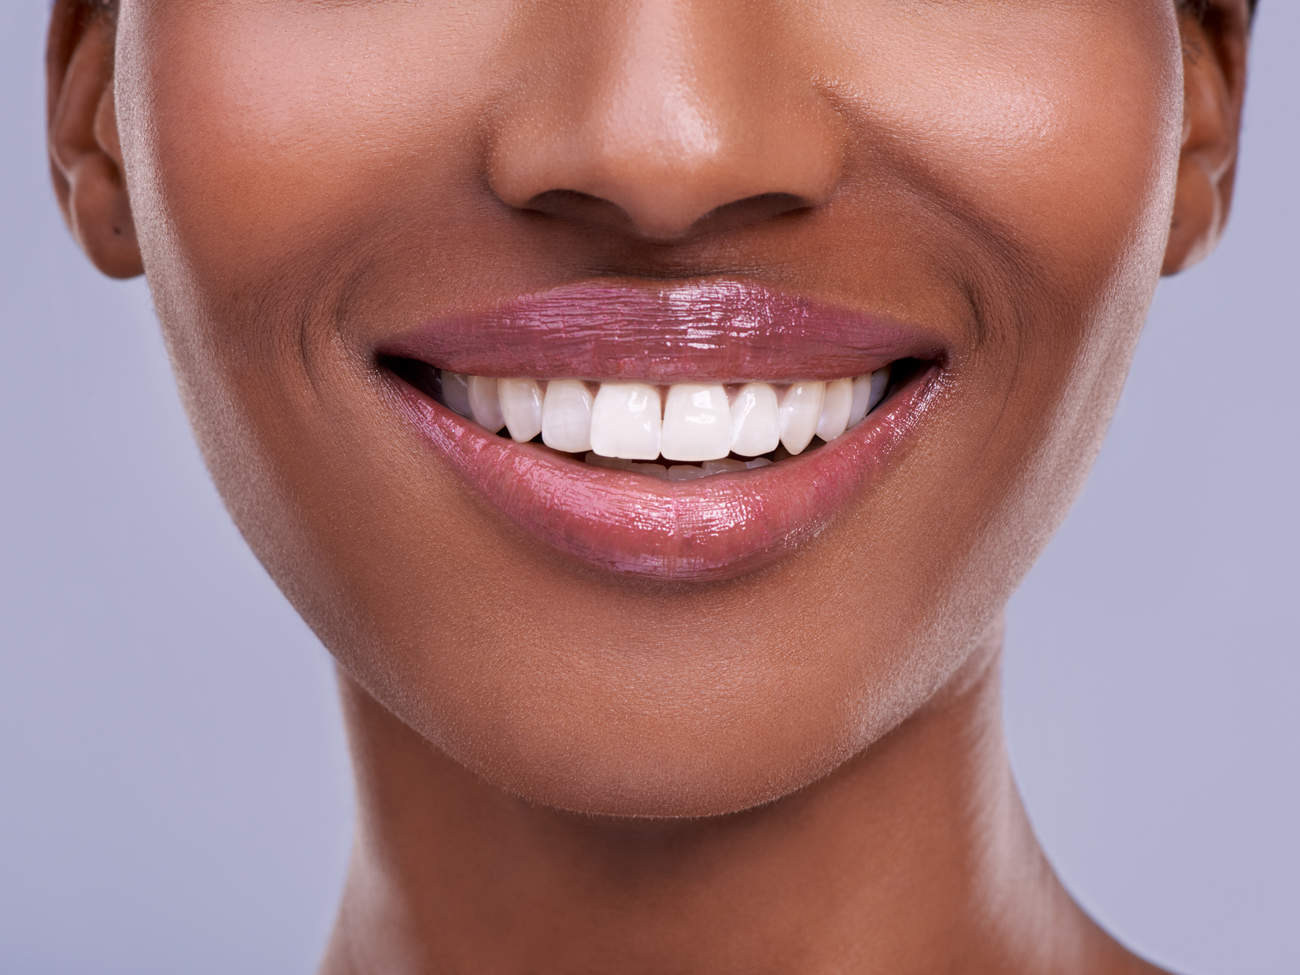 smile-lips-teeth-natural-makeup